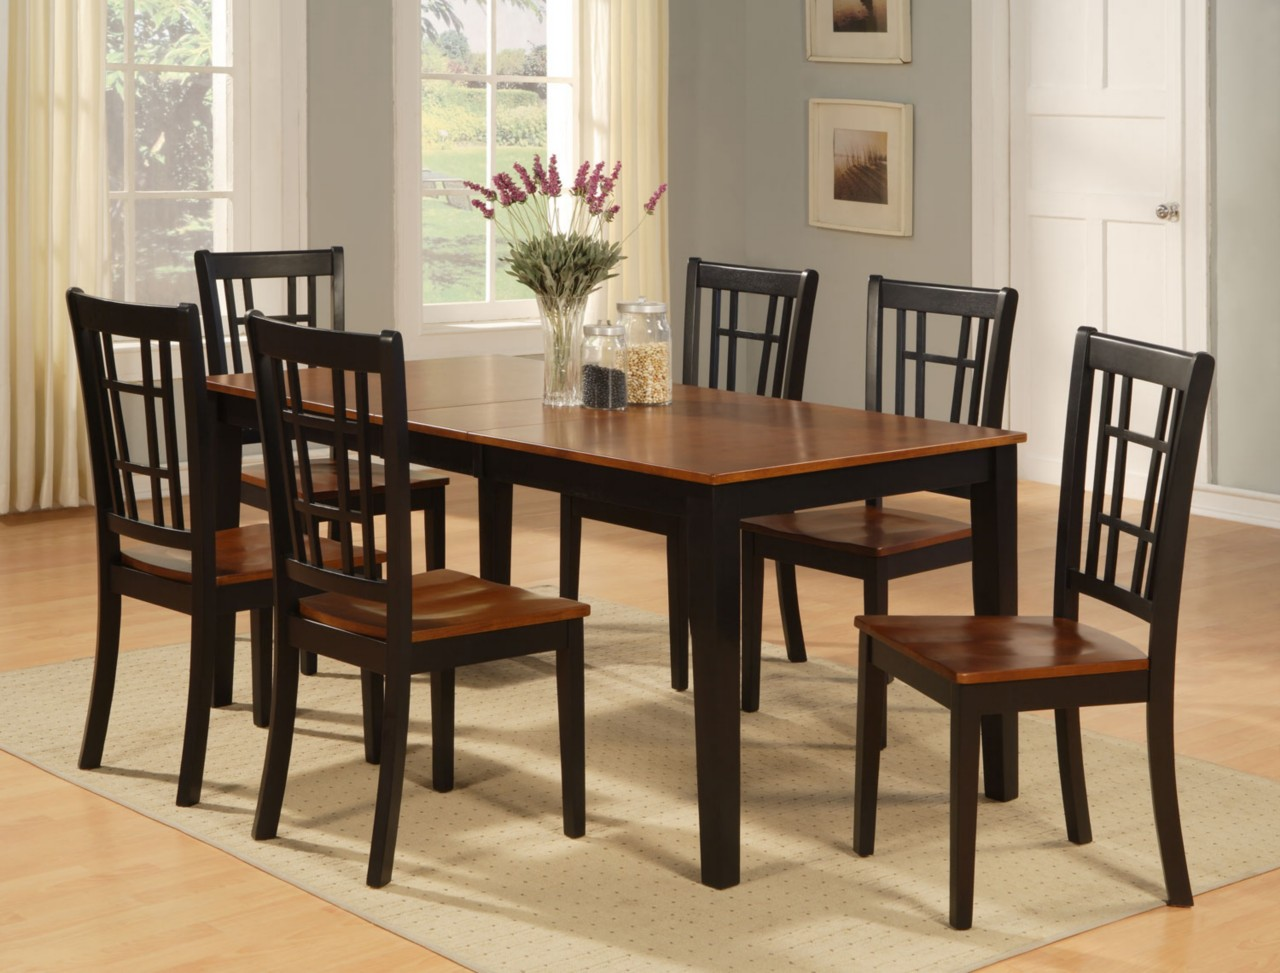 Dinette kitchen dining room set 7pc table and 6 chairs ebay for Kitchen table sets with bench and chairs